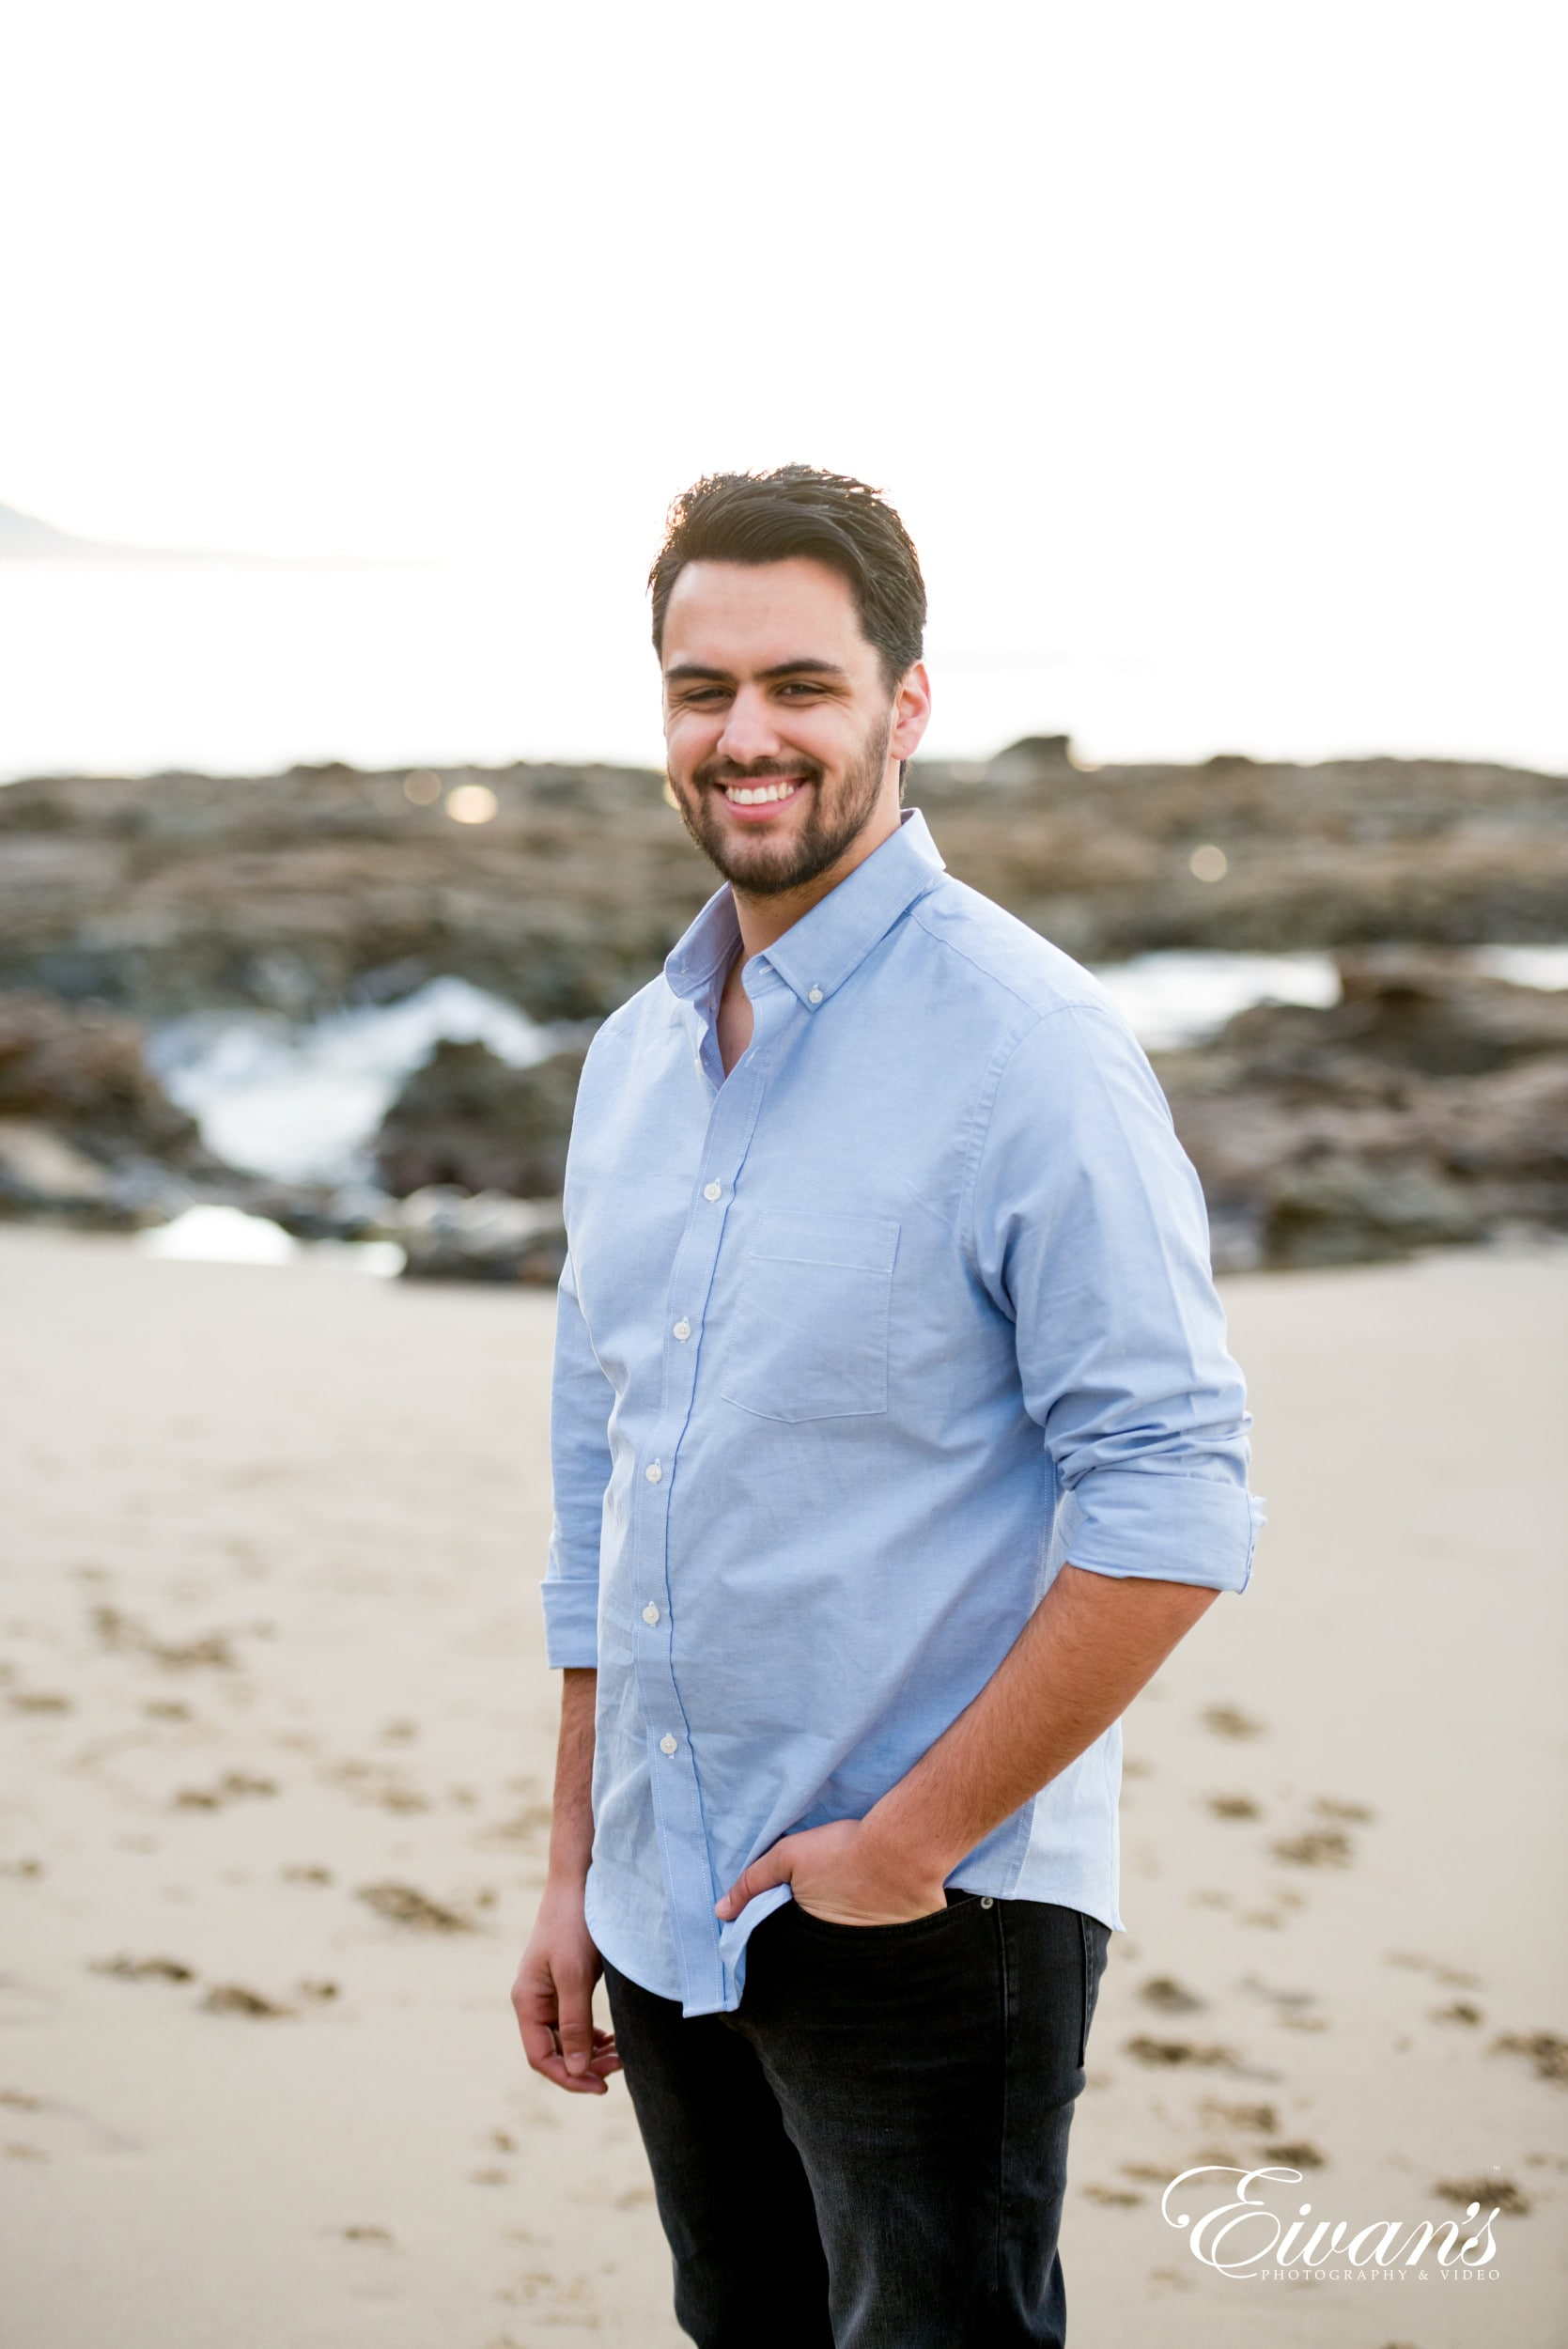 man in blue dress shirt standing on beach during daytime